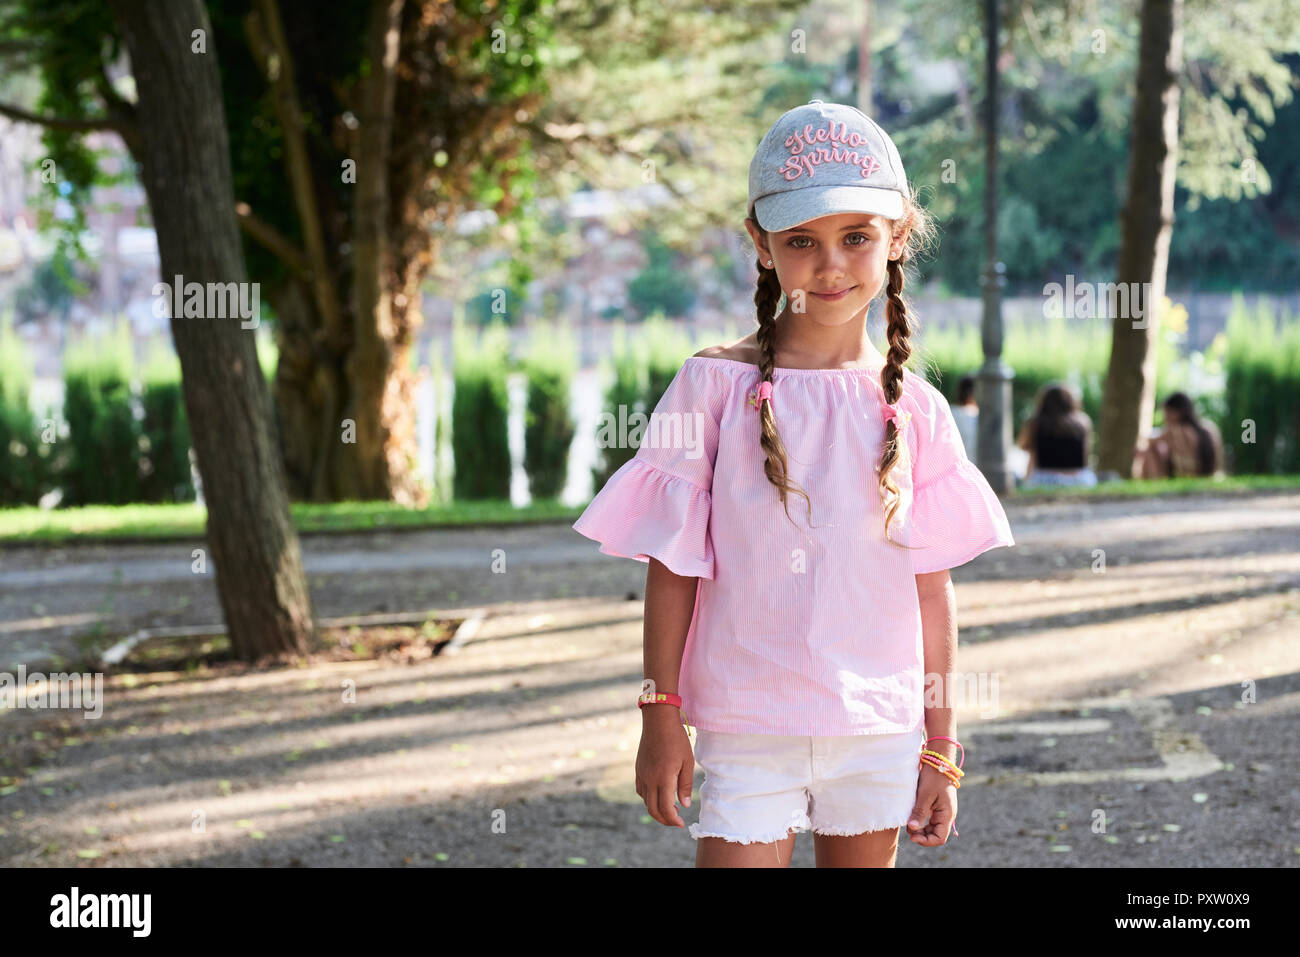 Portrait of smiling little girl with braids and cap - Stock Image